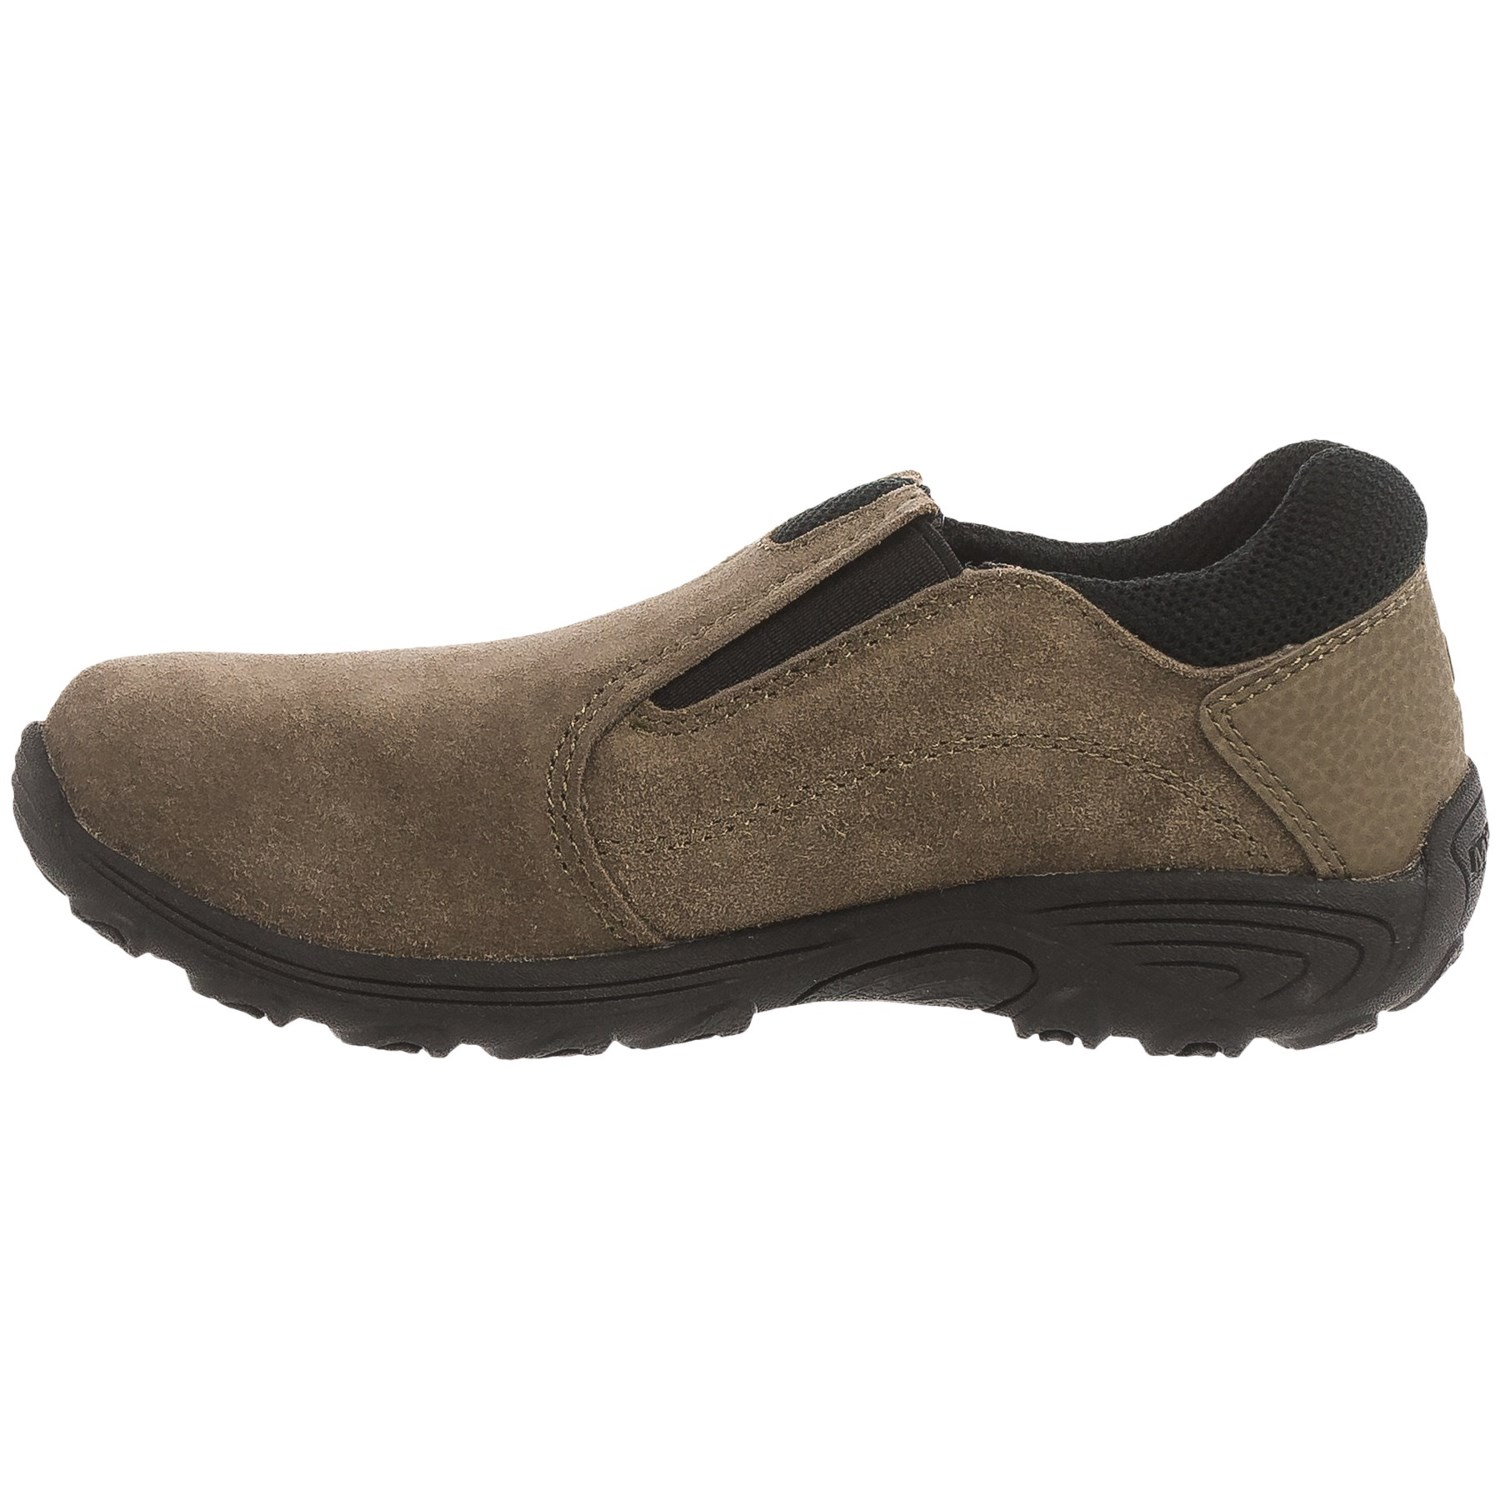 Black Merrell Shoes Slip On Clearance